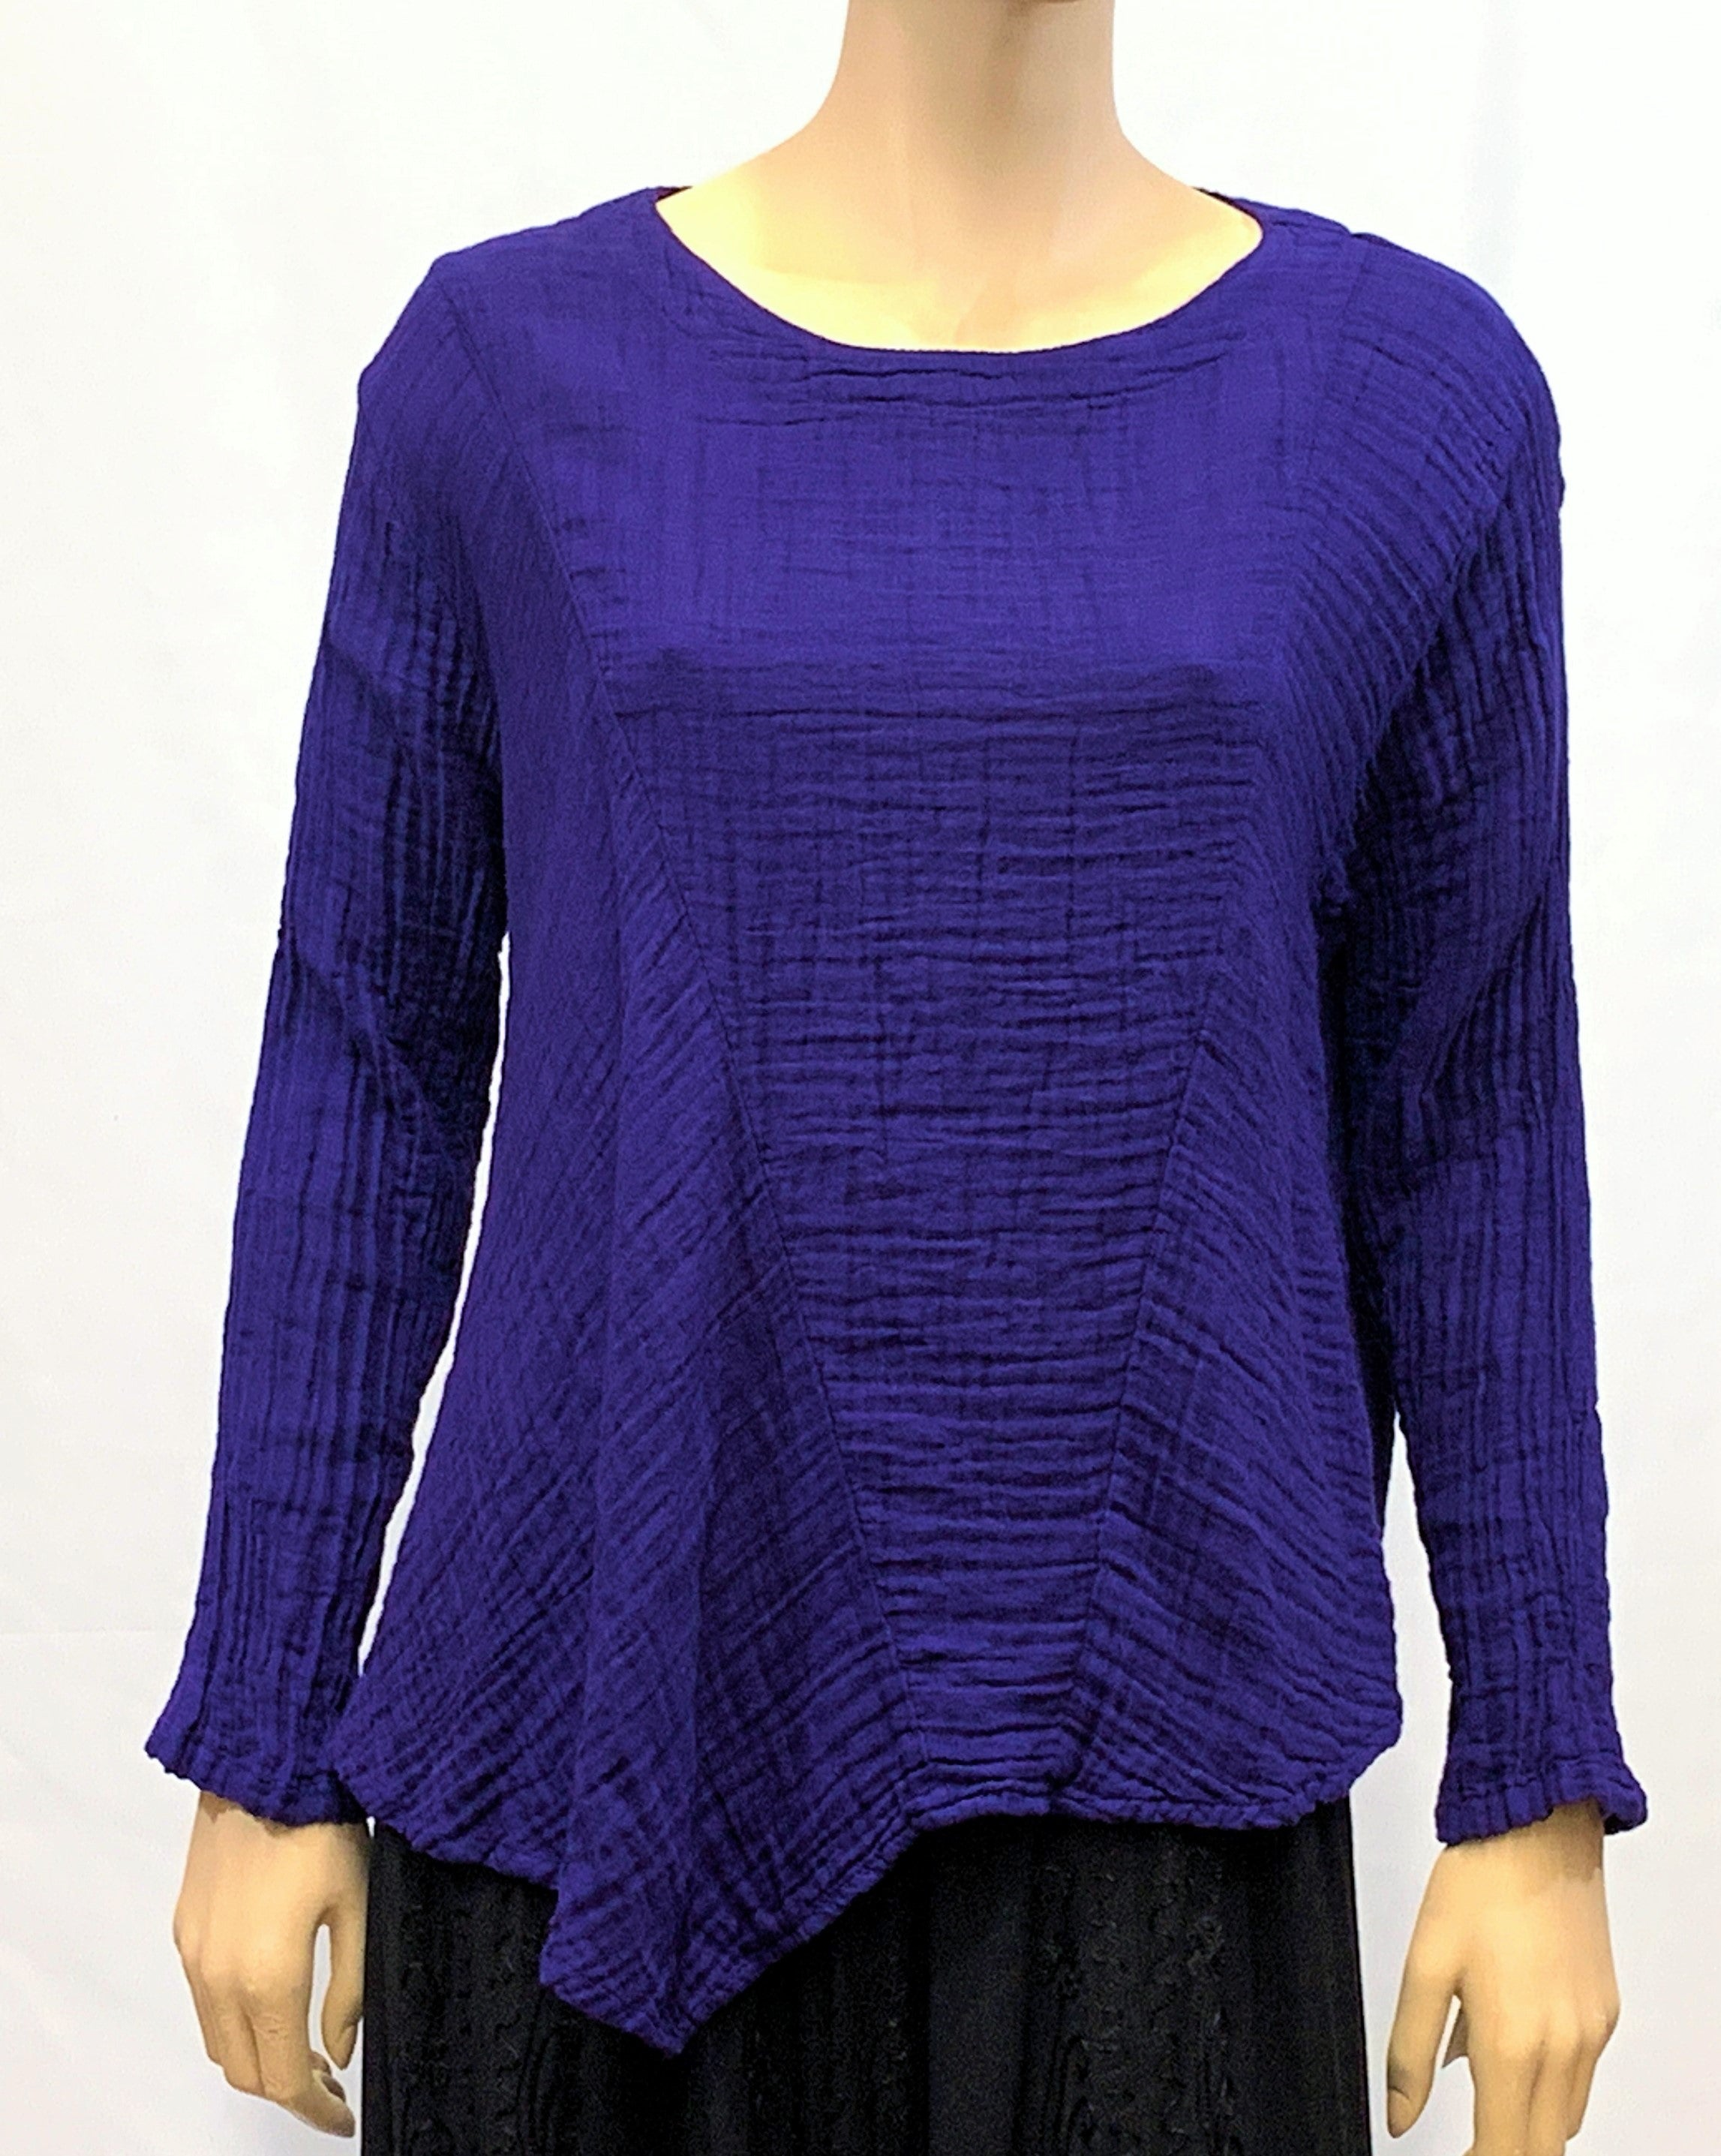 Full sleeve Cotton Top